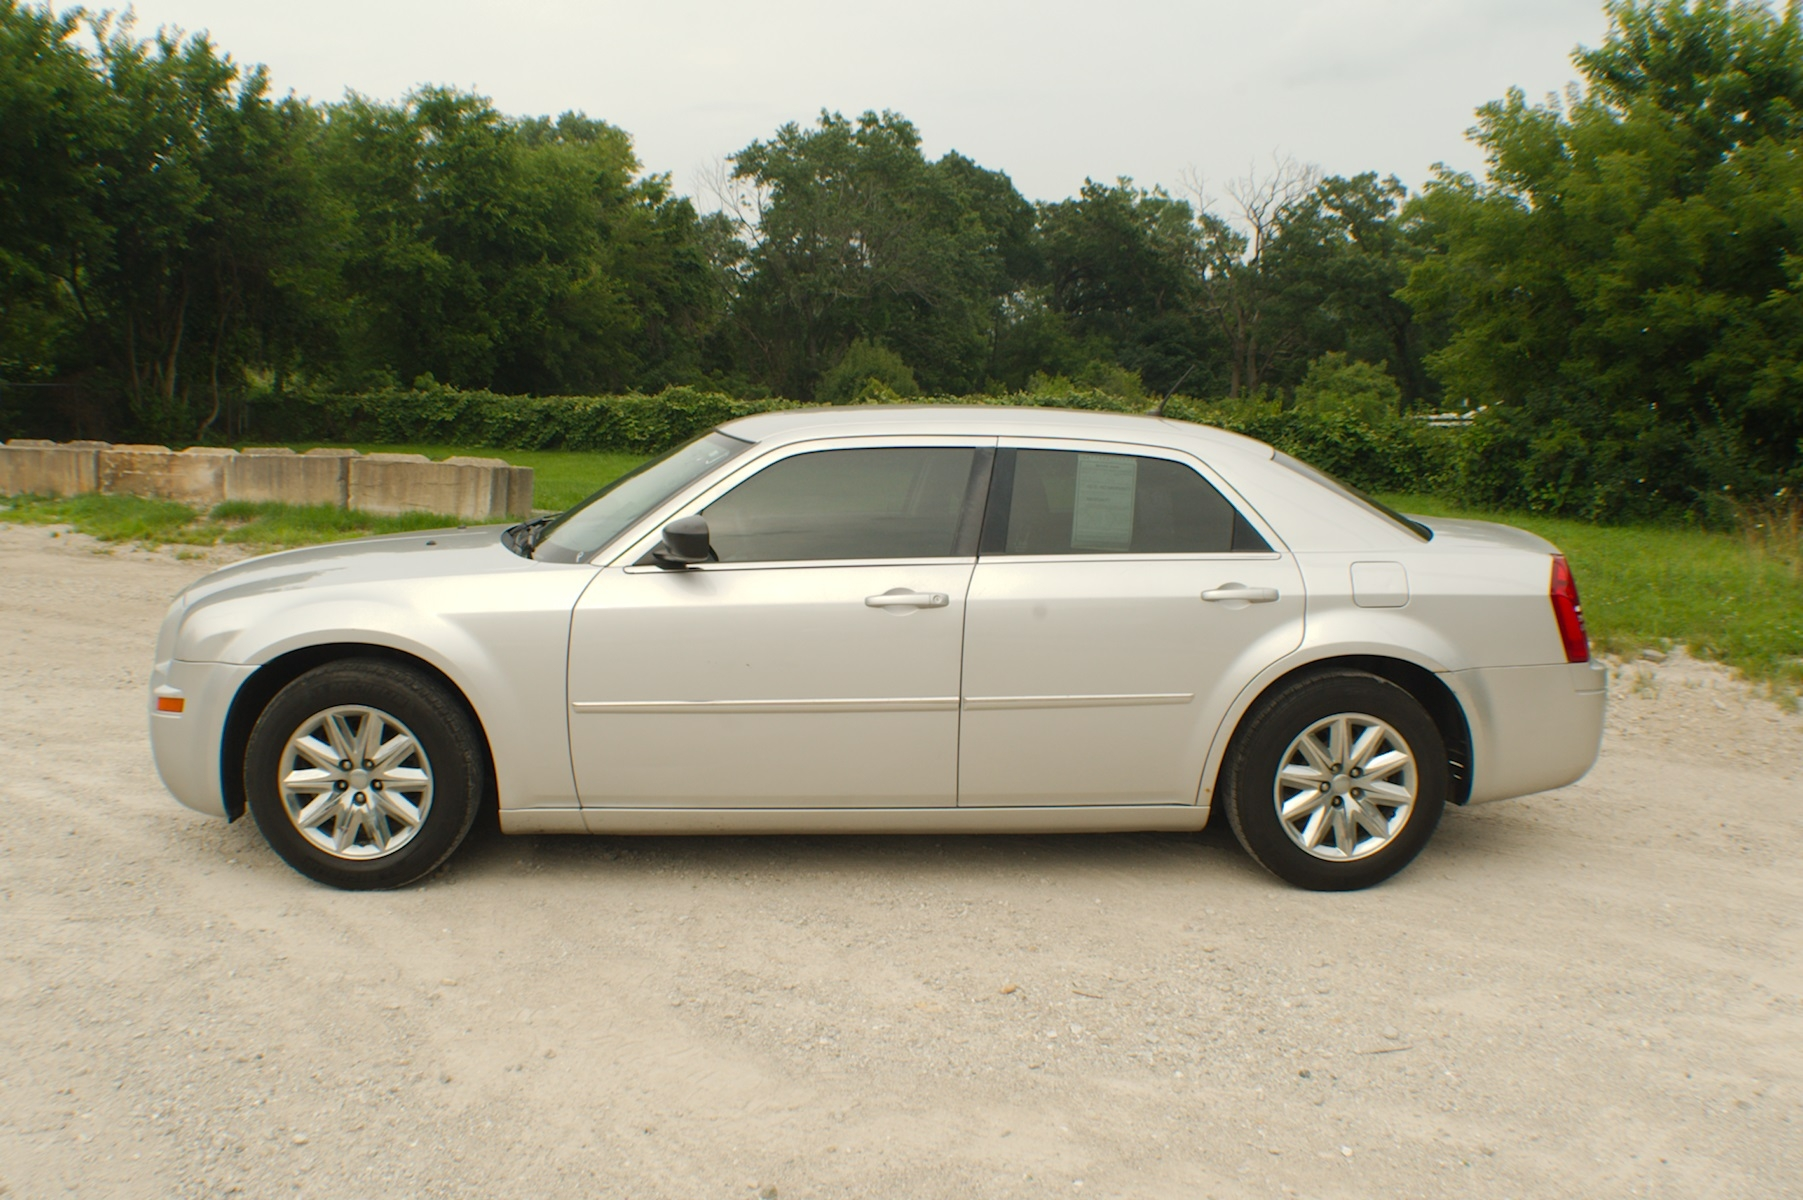 2008 Chrysler 300 Silver Sedan Used Car Sale Antioch Zion Waukegan Lake County Illinois